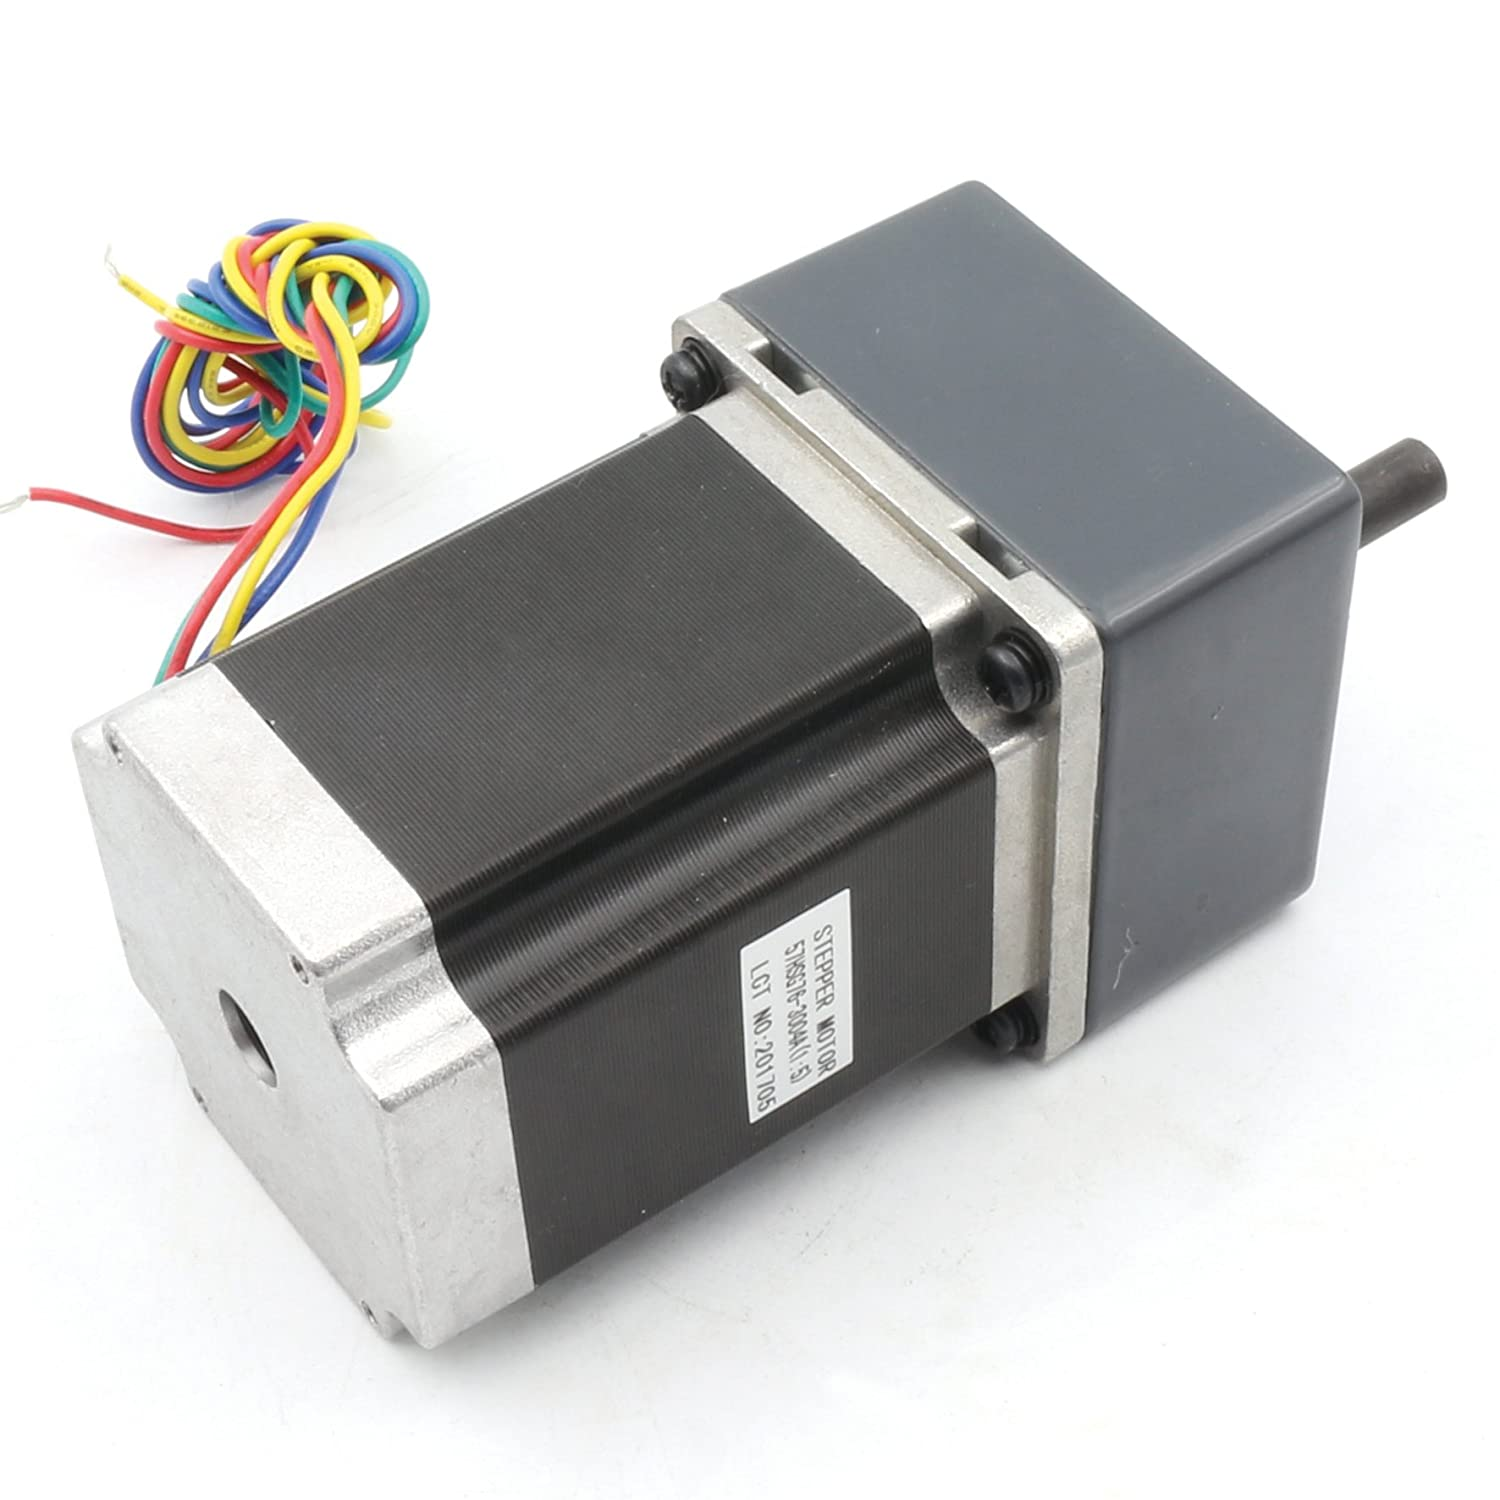 Ltd Ratio 1:5 Gearbox Nema23 Geared Stepper Motor 76mm 850oz-in 3A 4-Lead High Torque Speed Reduction Motor with Gear Box Motor for CNC Milling Lathe Router Engraving Machine Changzhou Rattm Motor Co